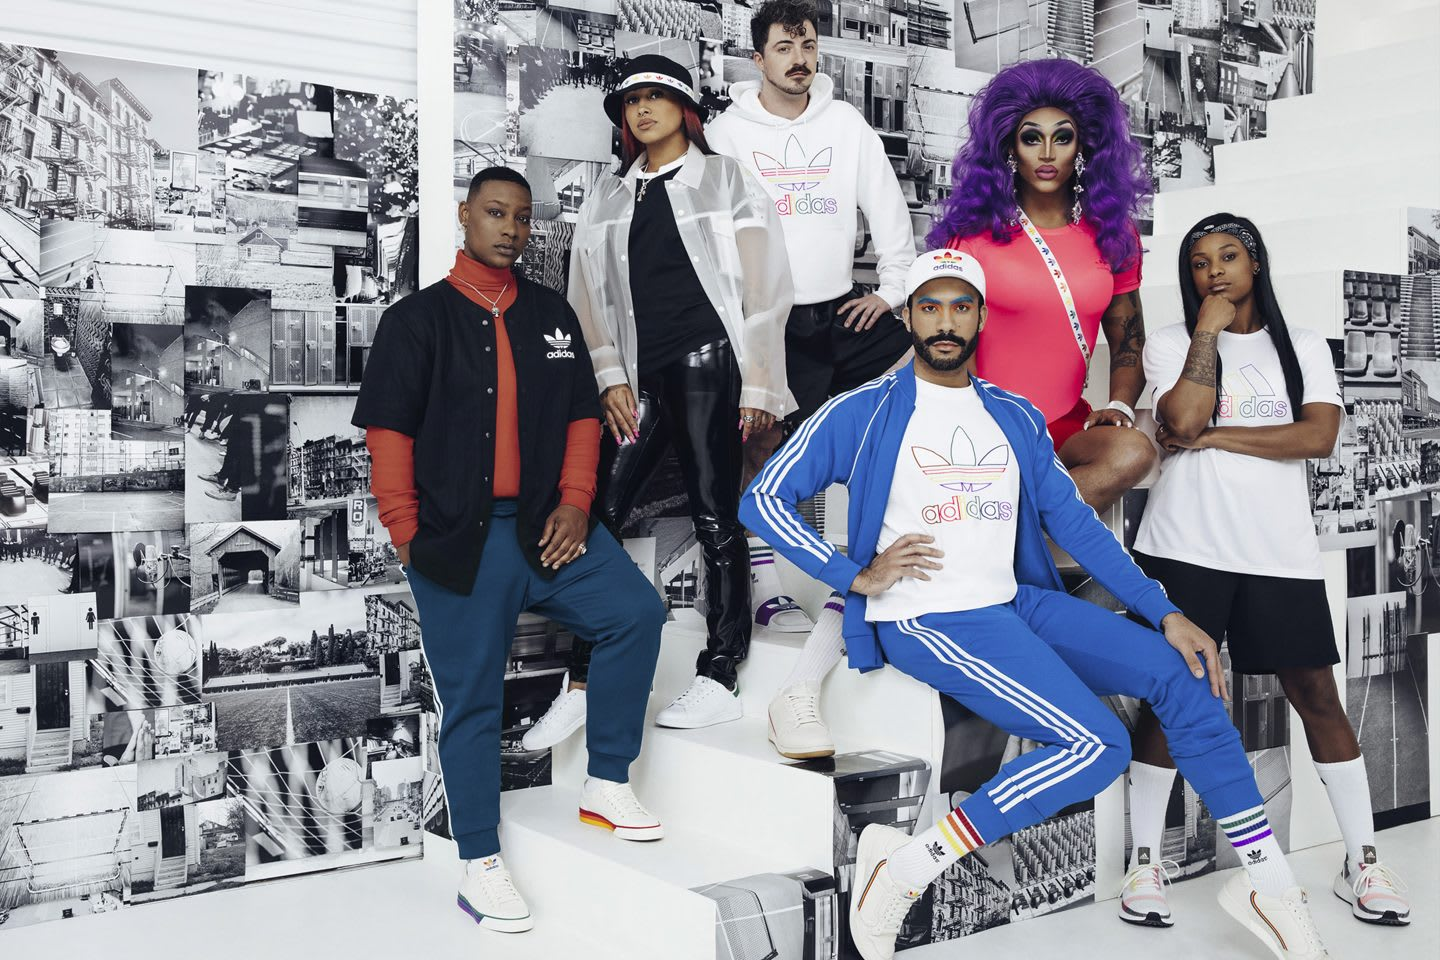 Individuals wearing adidas streetwear posing together in a group, LGBTQ, inclusivity, diversity, adidas